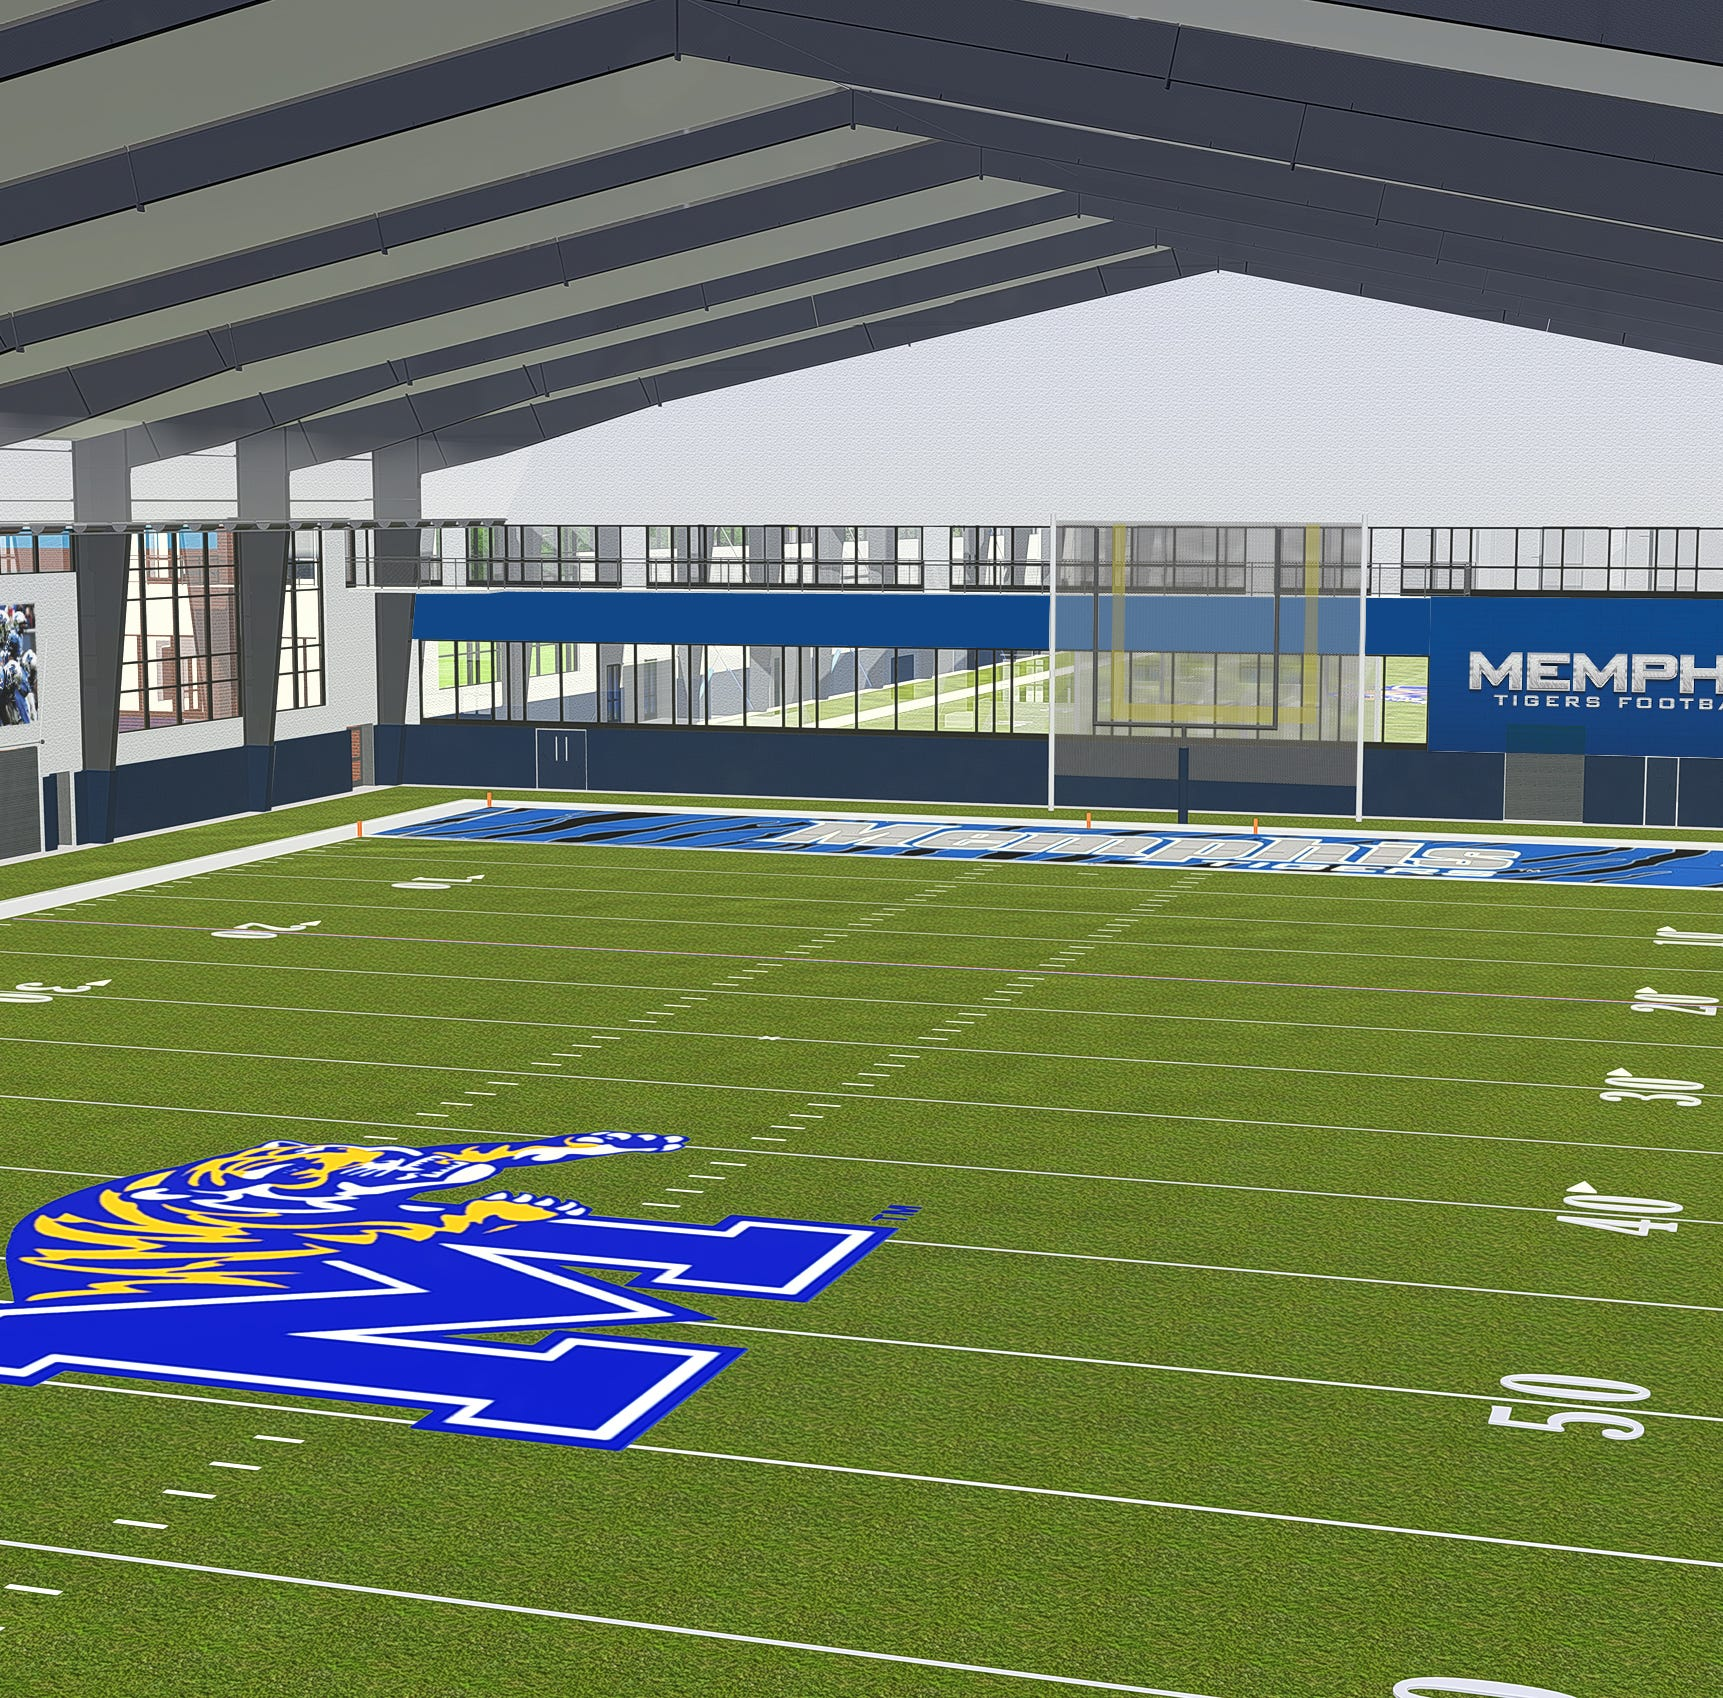 University of Memphis files $8.8 million permit for indoor football practice facility